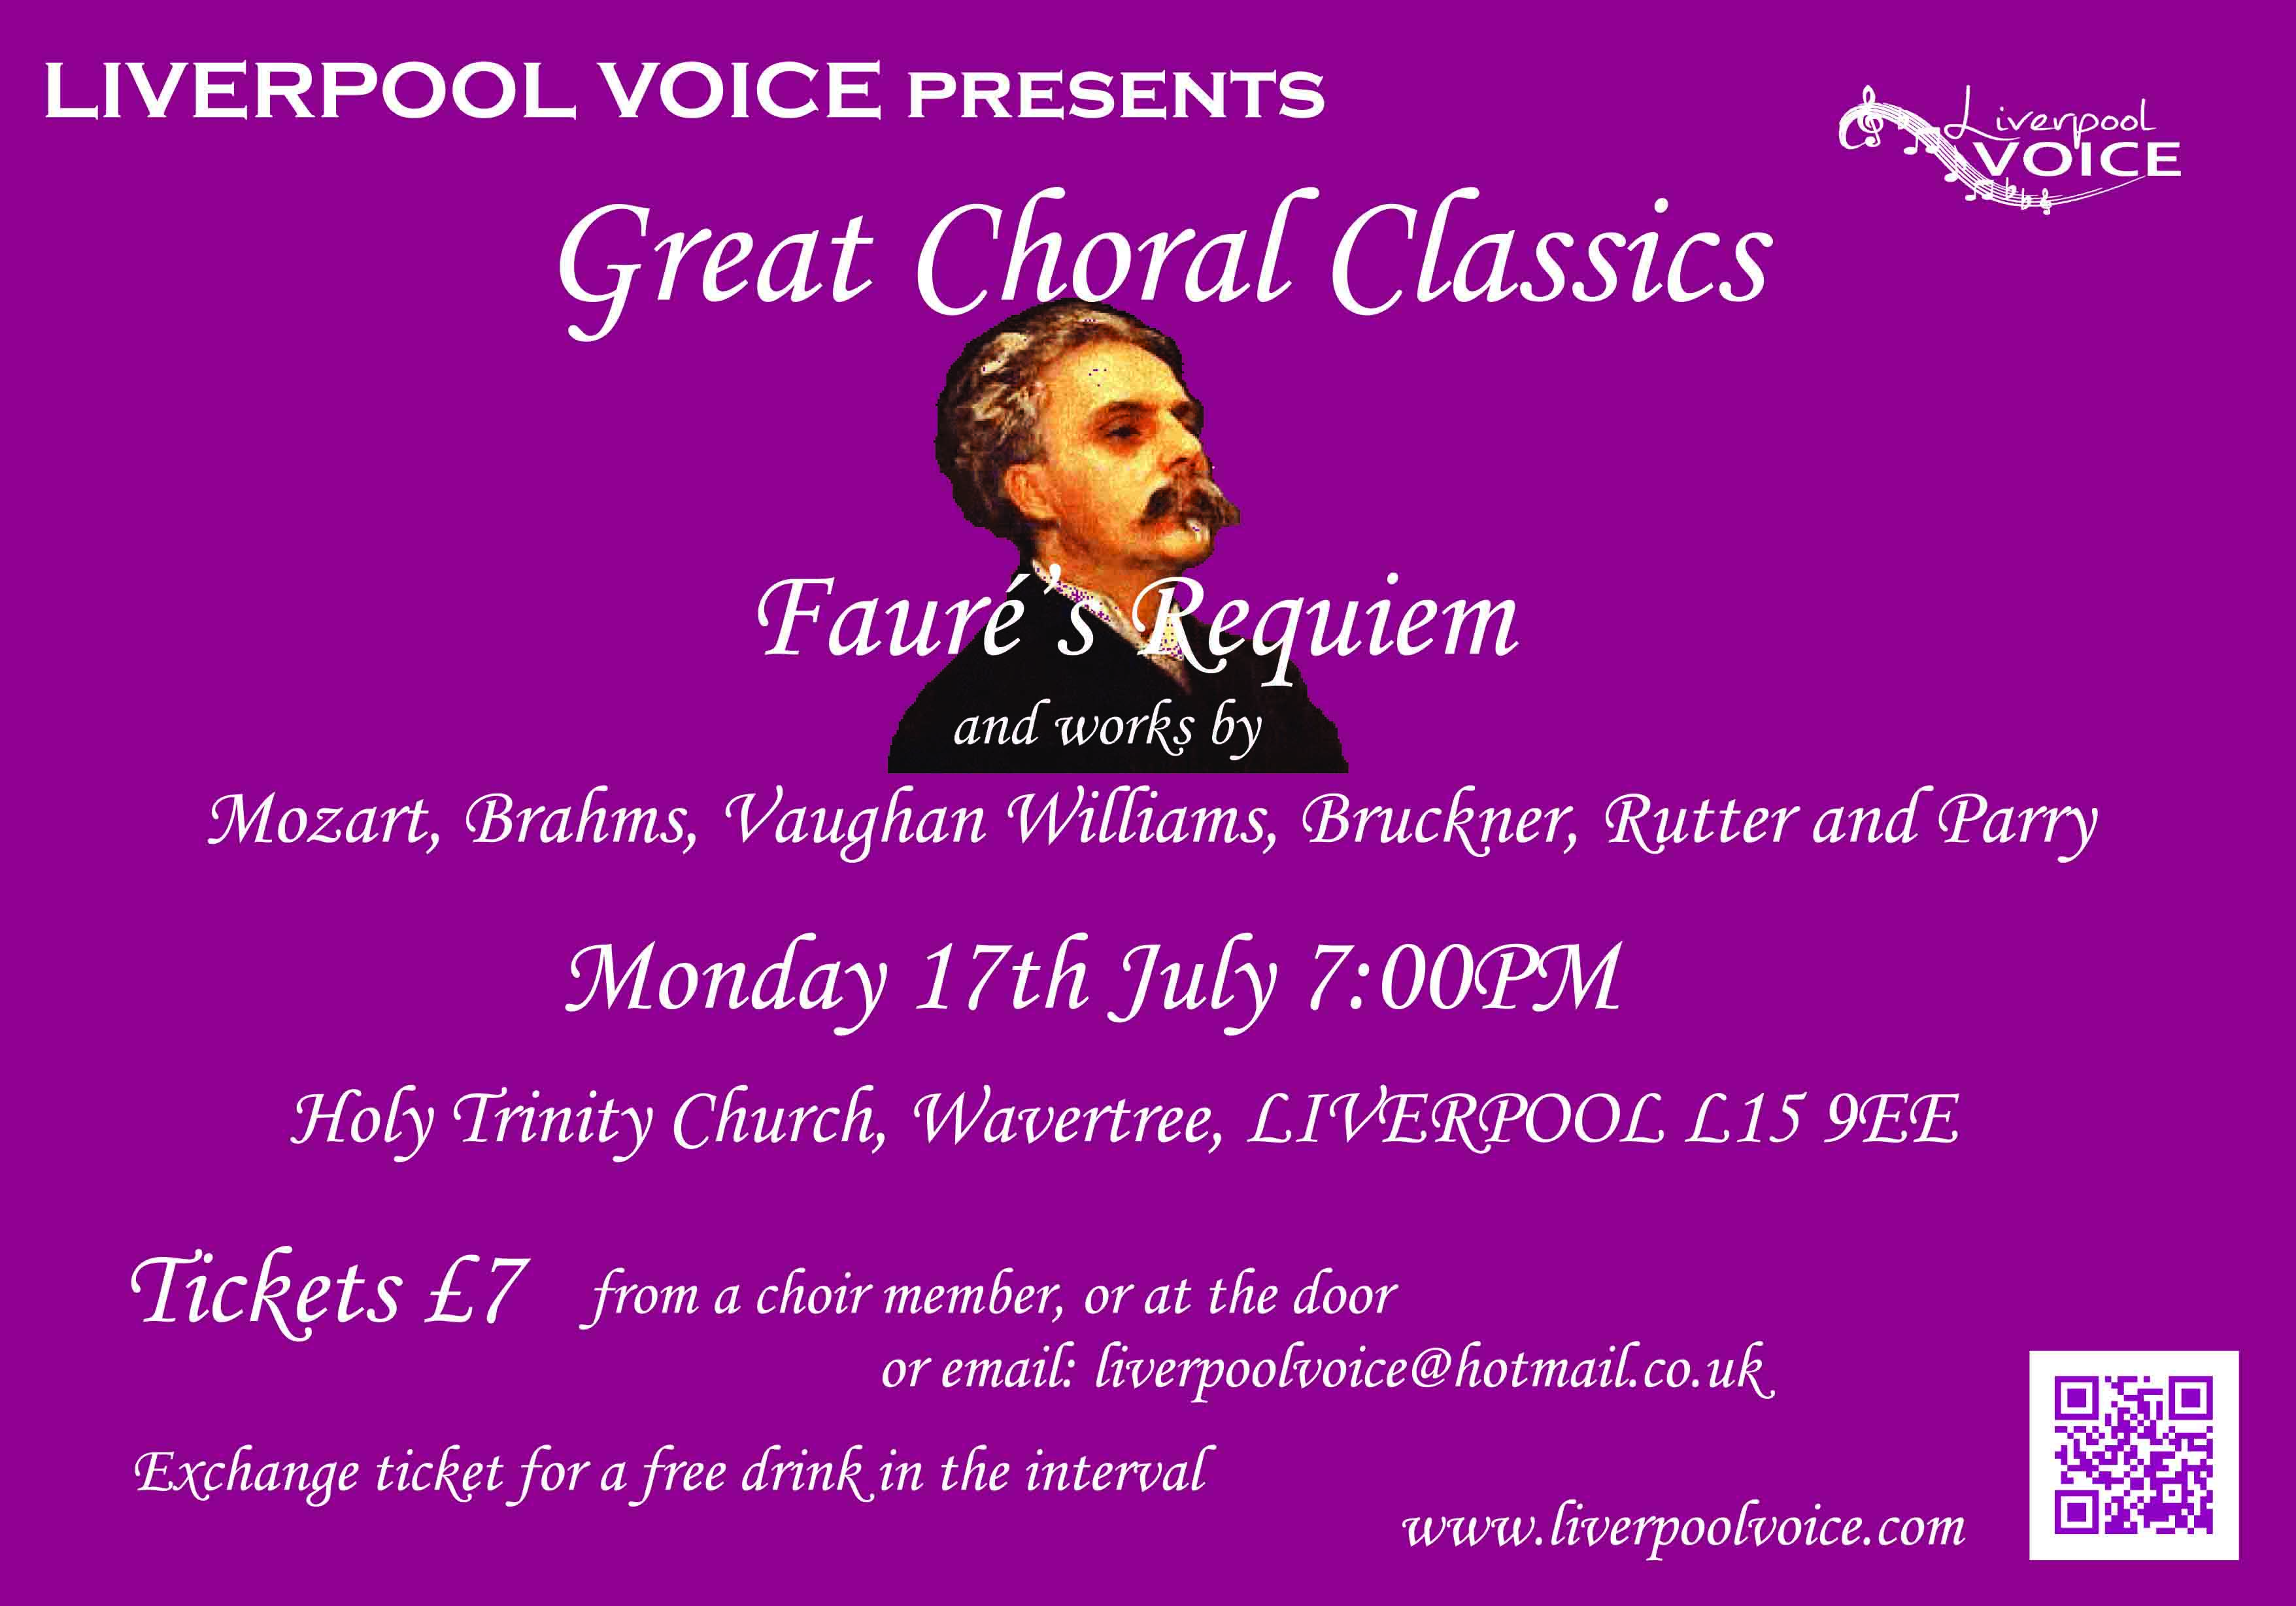 Great Choral Classics poster by Chris Williams